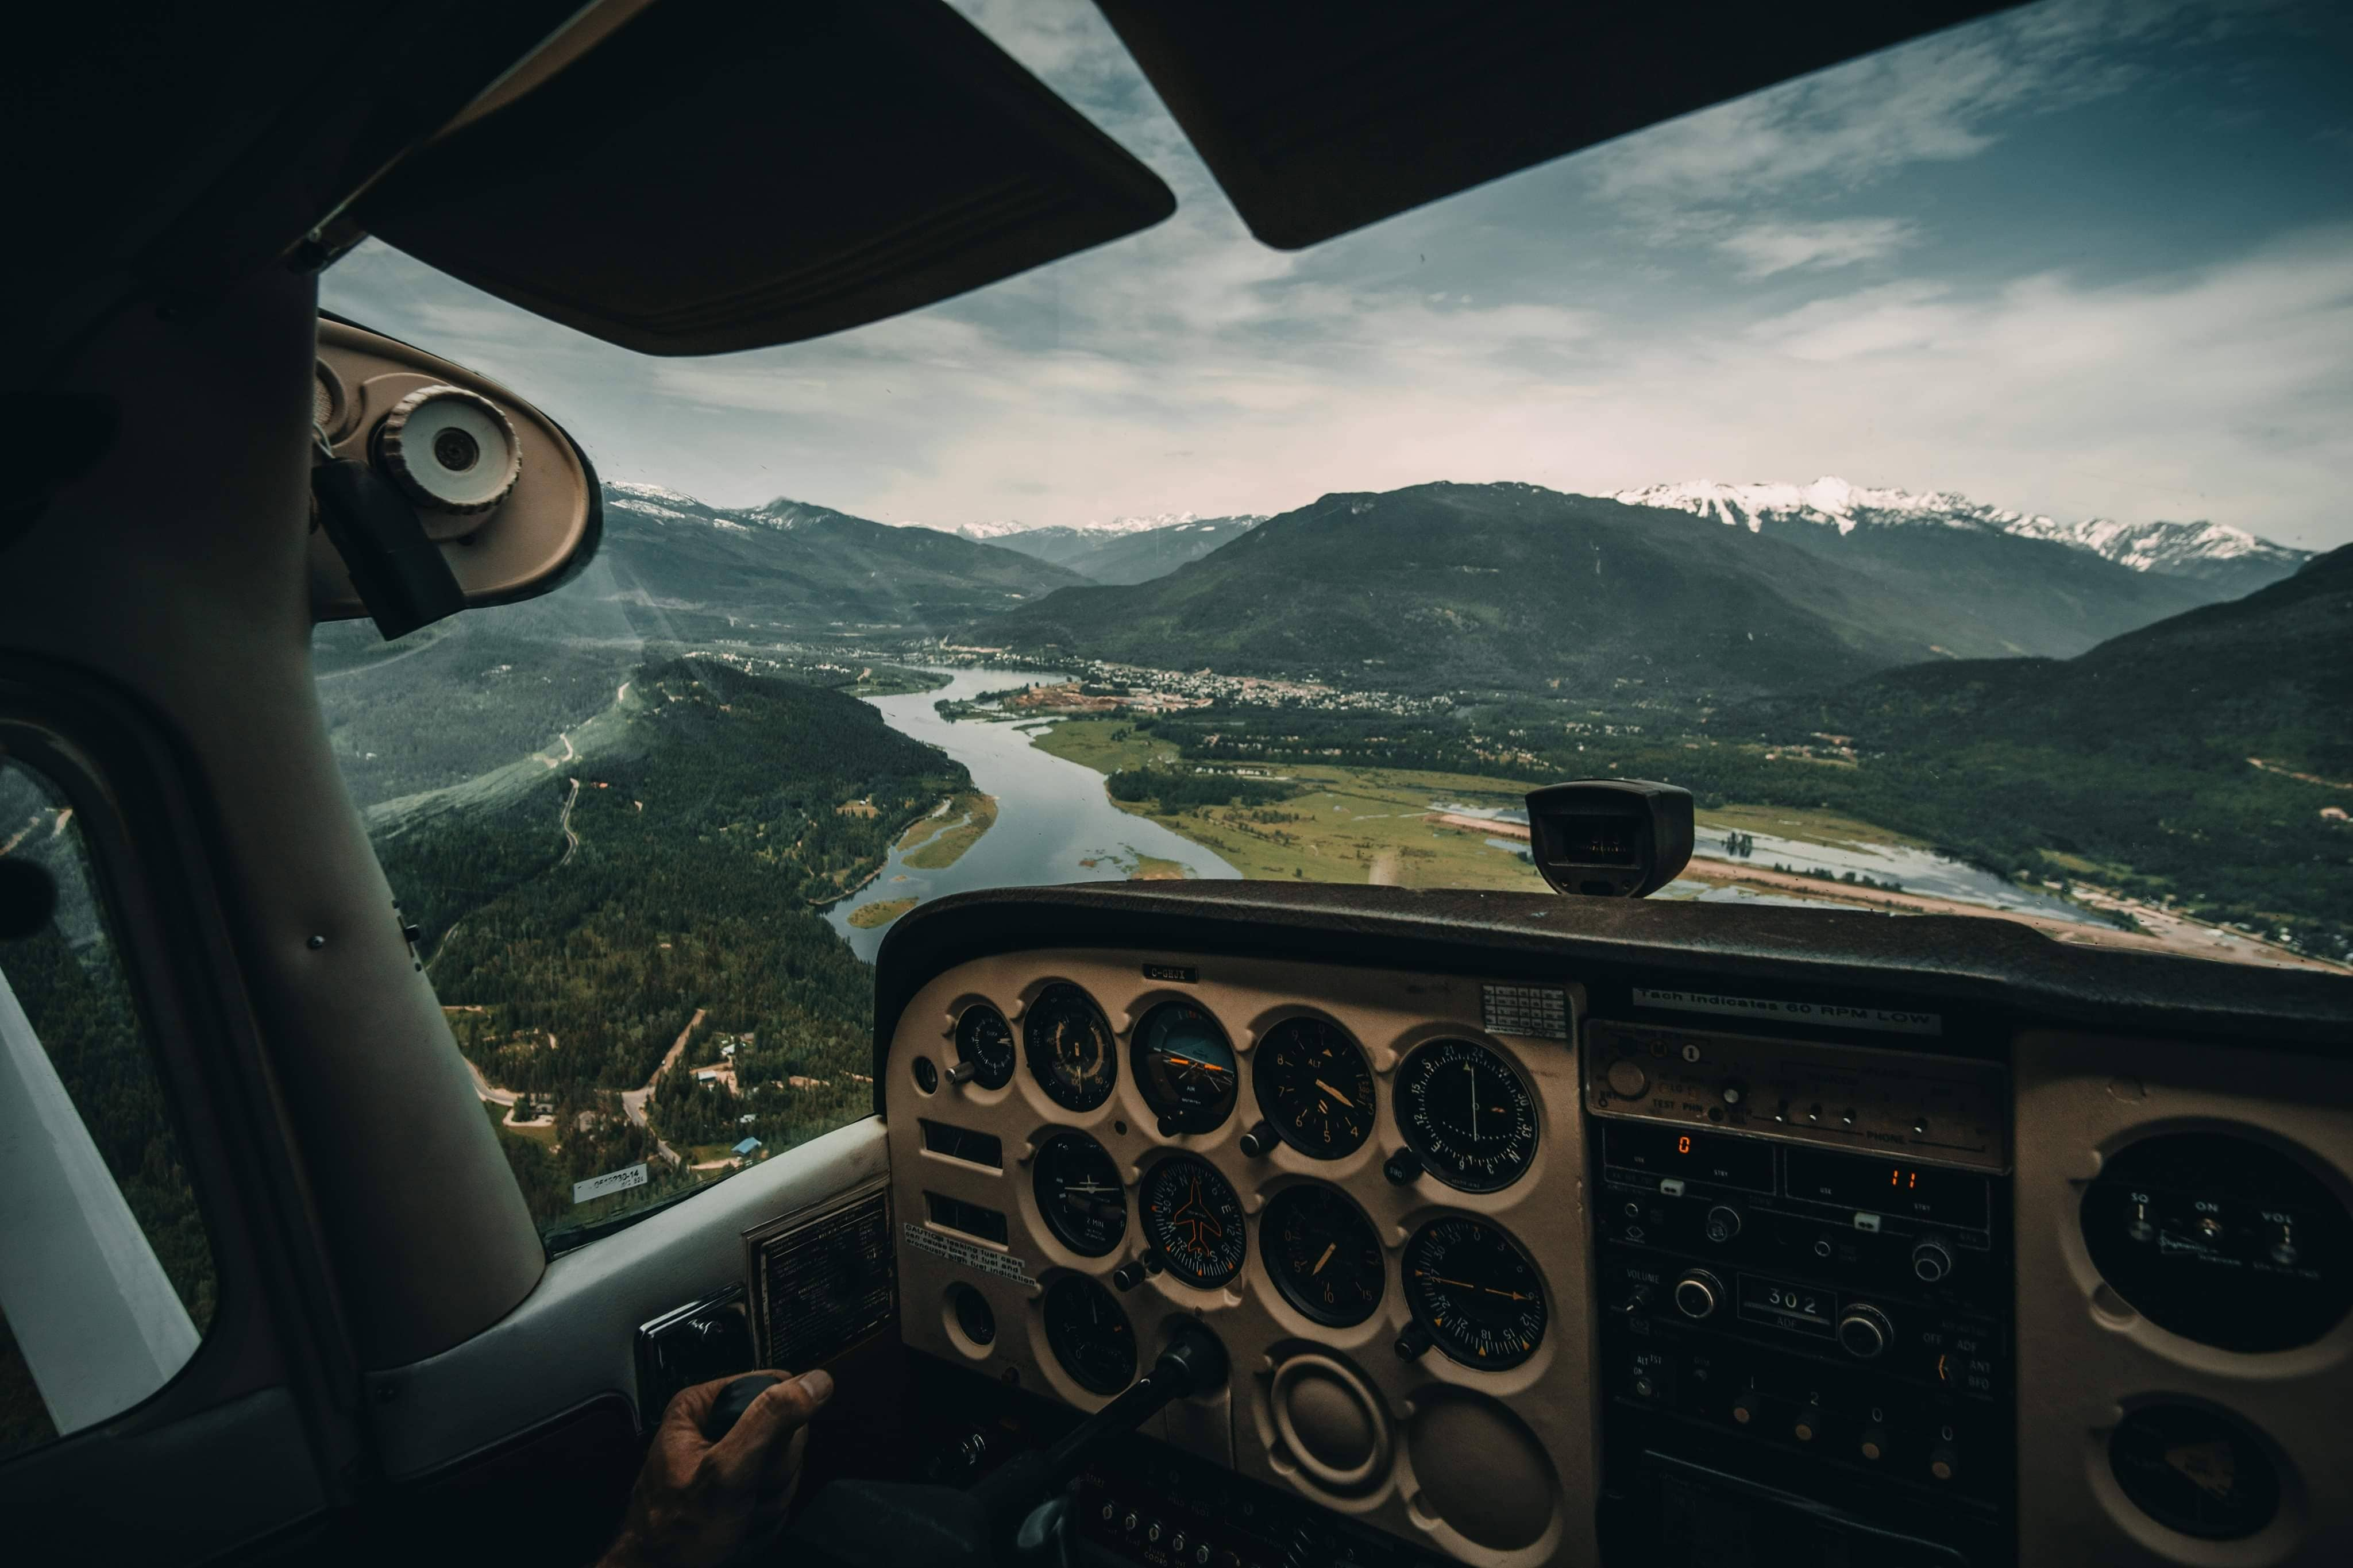 View from the Inside of a Plane Overlooking Mountains by Jordan McGrath